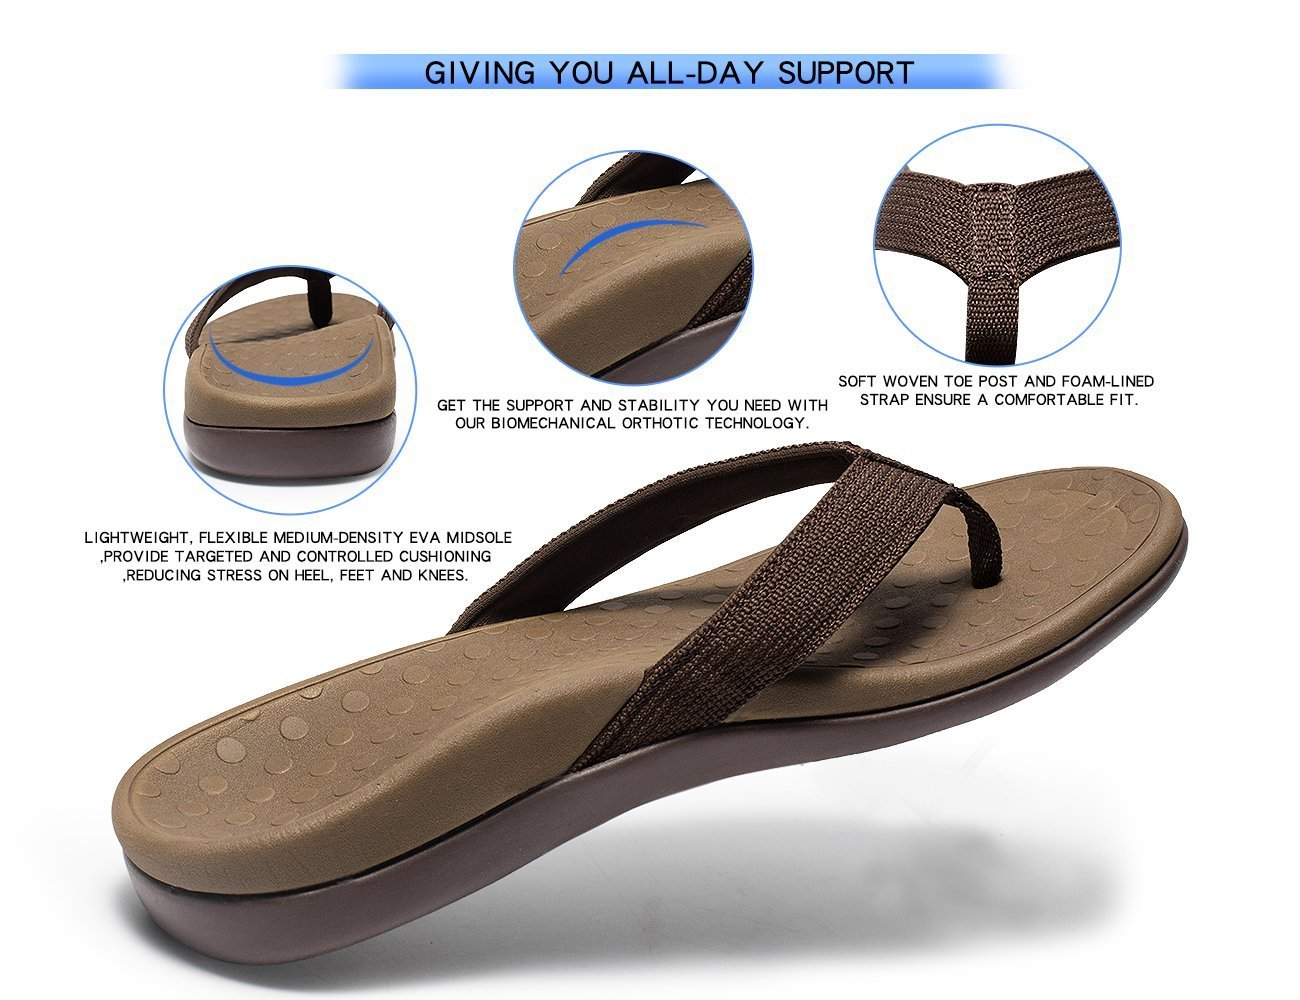 Plantar Fasciitis Feet Sandal with Arch Support - Best Orthotic flip Flops for Flat Feet,Heel Pain- for Women